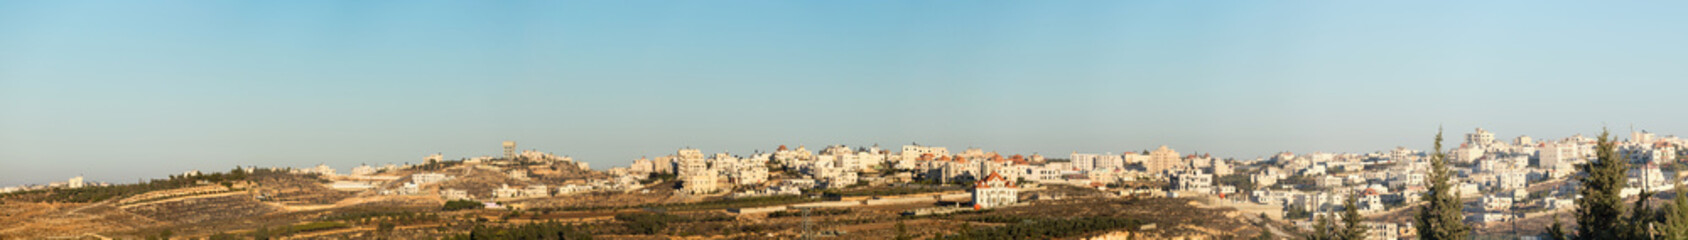 Wide panorama of houses on the outskirts of Hebron